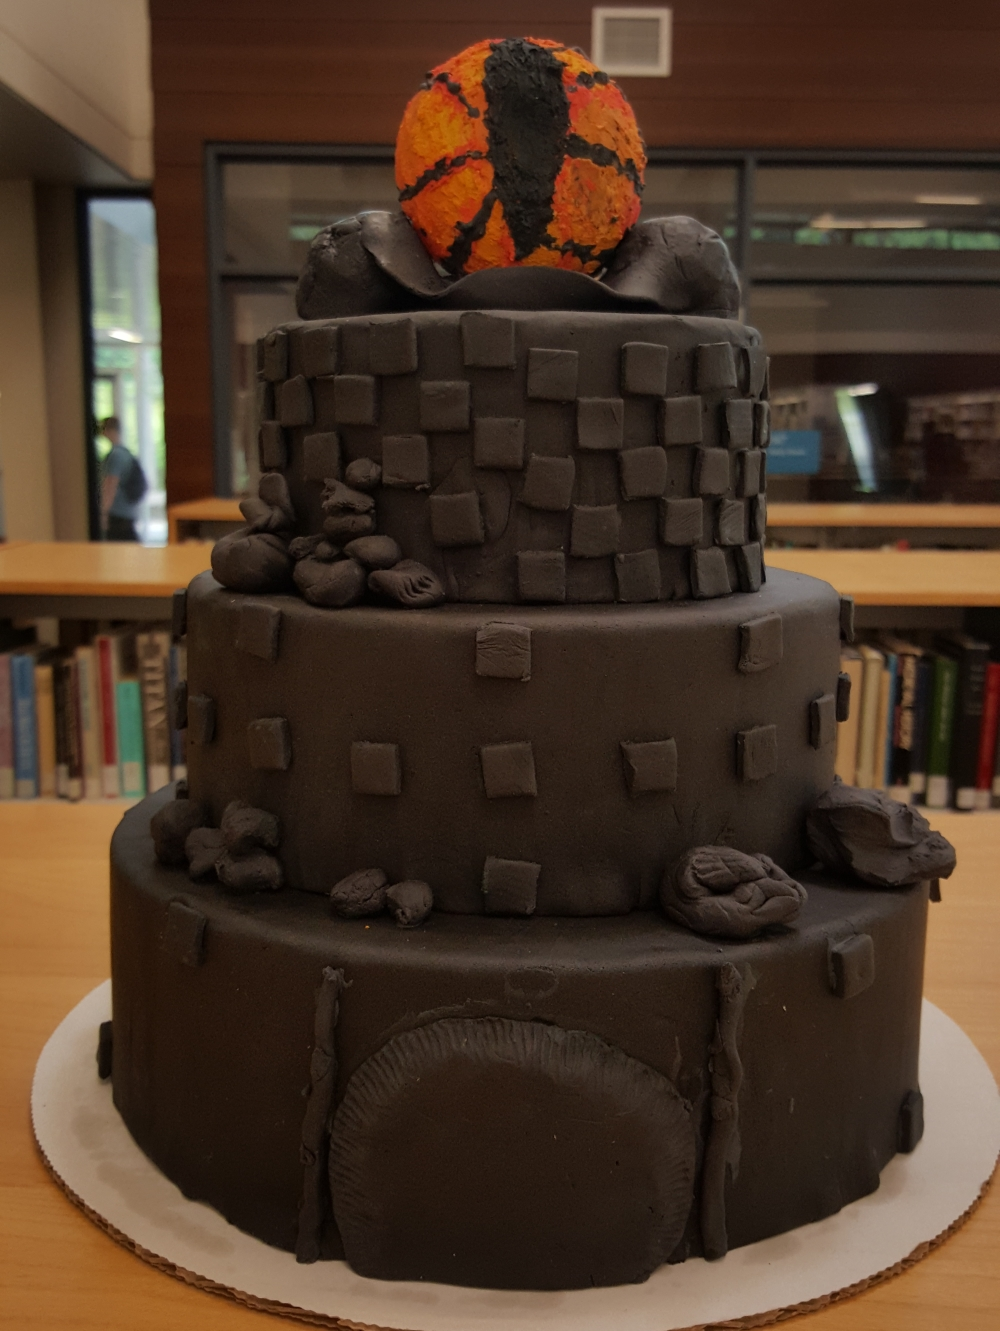 2019 Cakes Eye of Mordor Tower - front view